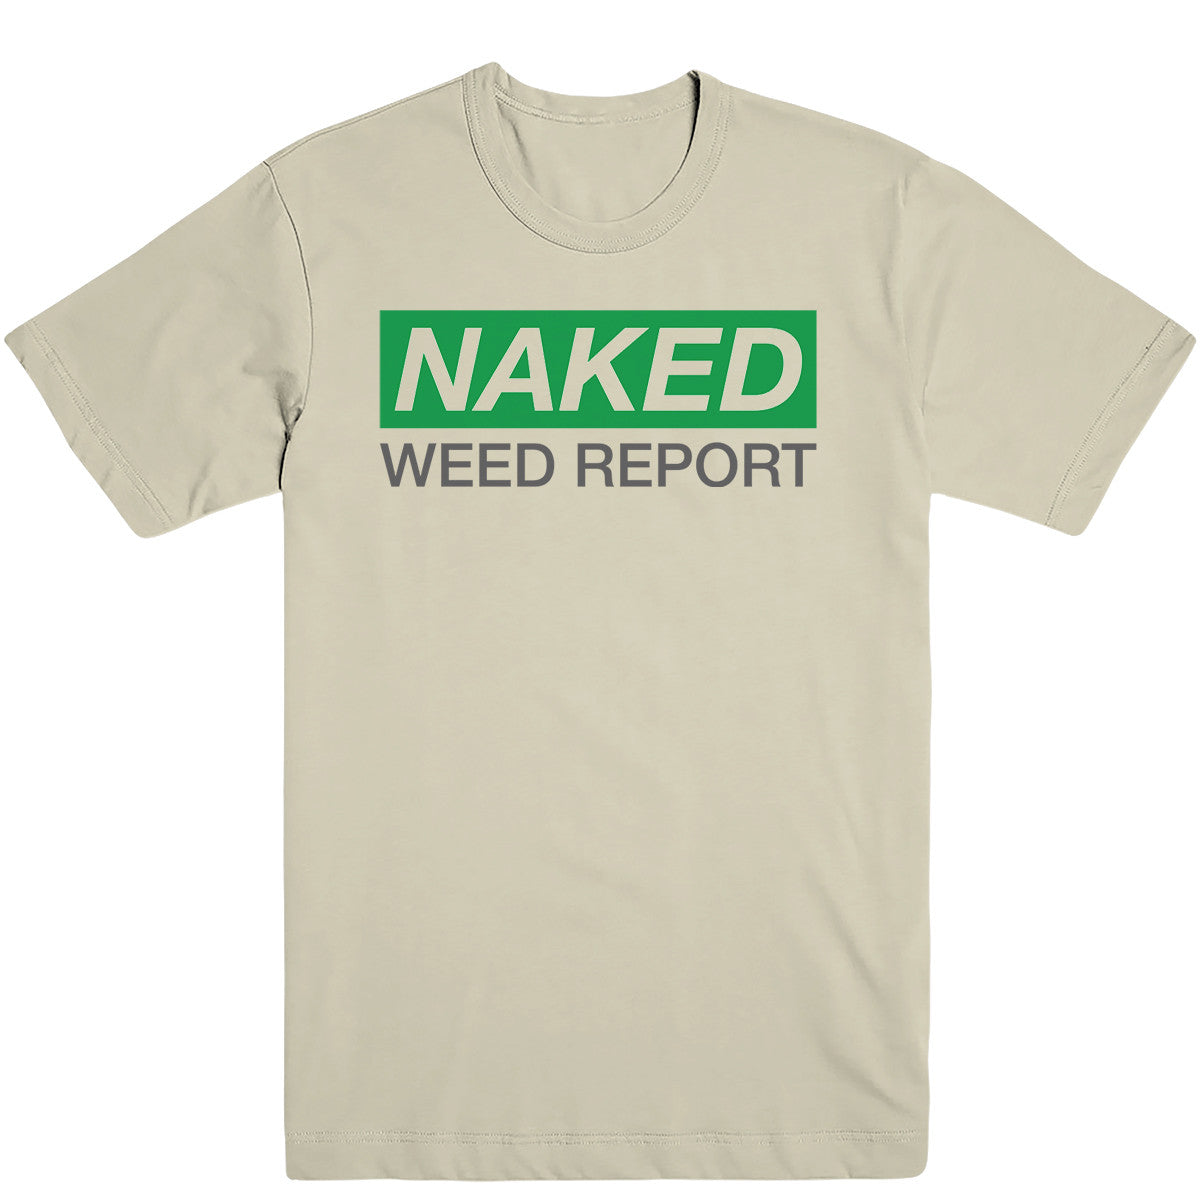 Naked Weed Report Tee